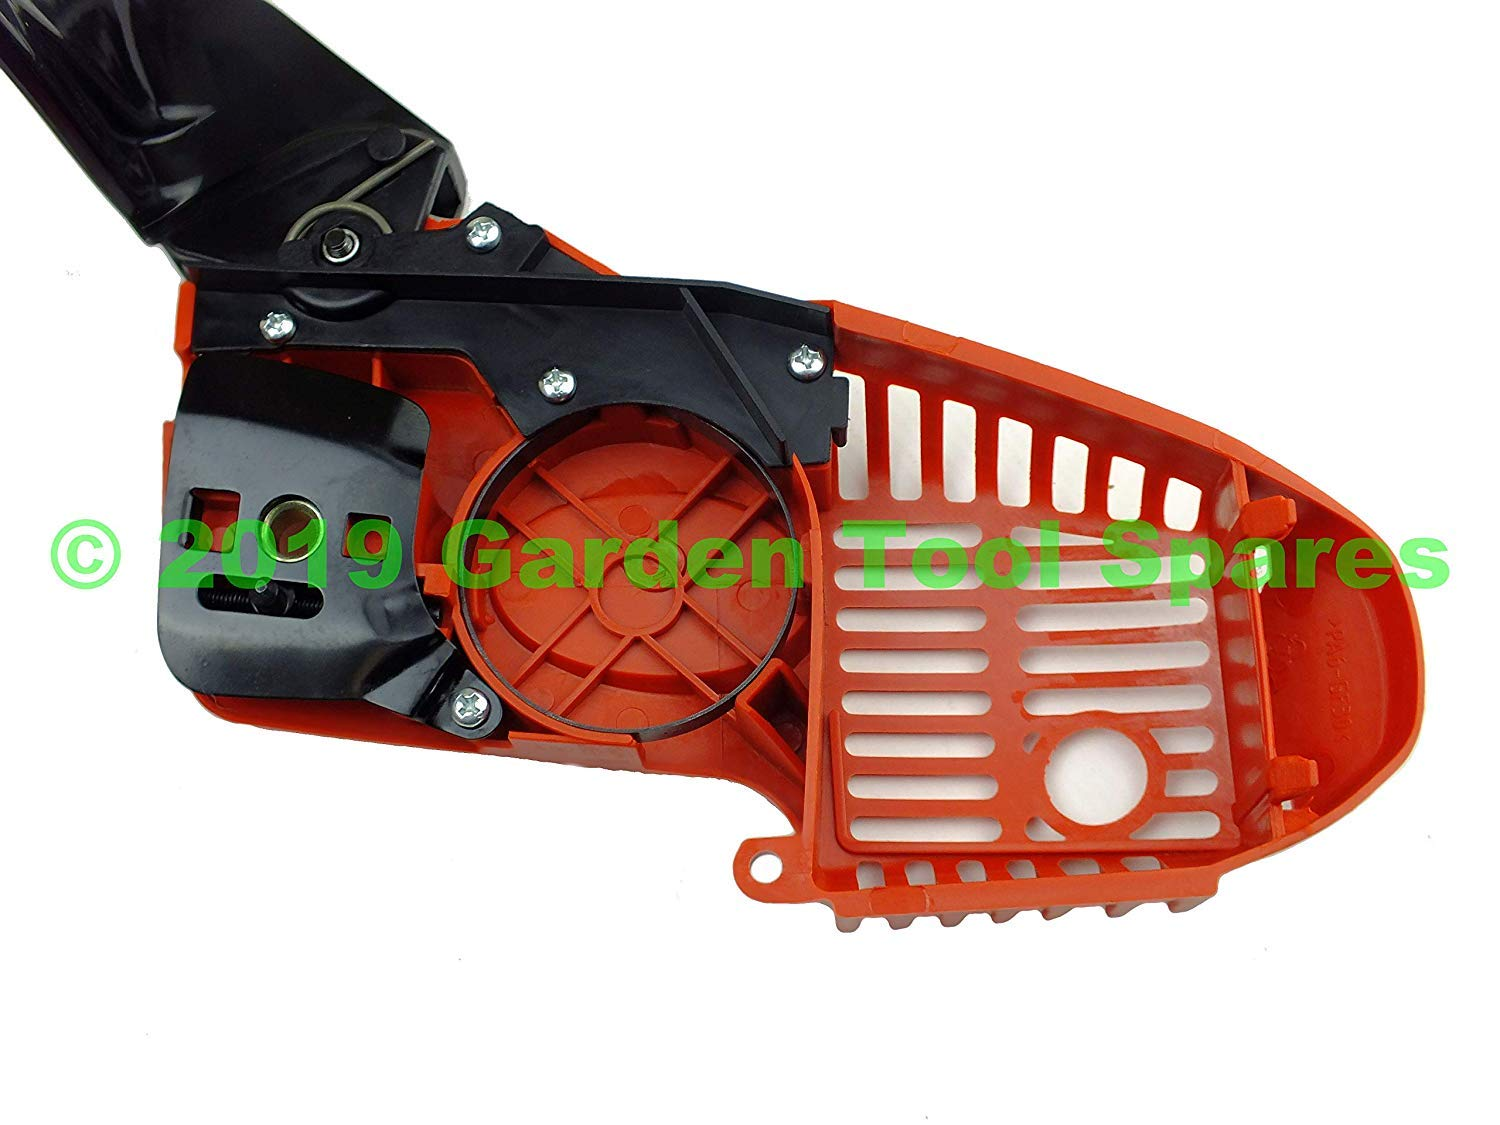 Brake Handle//Clutch Sprocket Cover Chinese Chainsaw 2500 25CC TIMBERPRO PAINIER Carlton LAWNFLITE